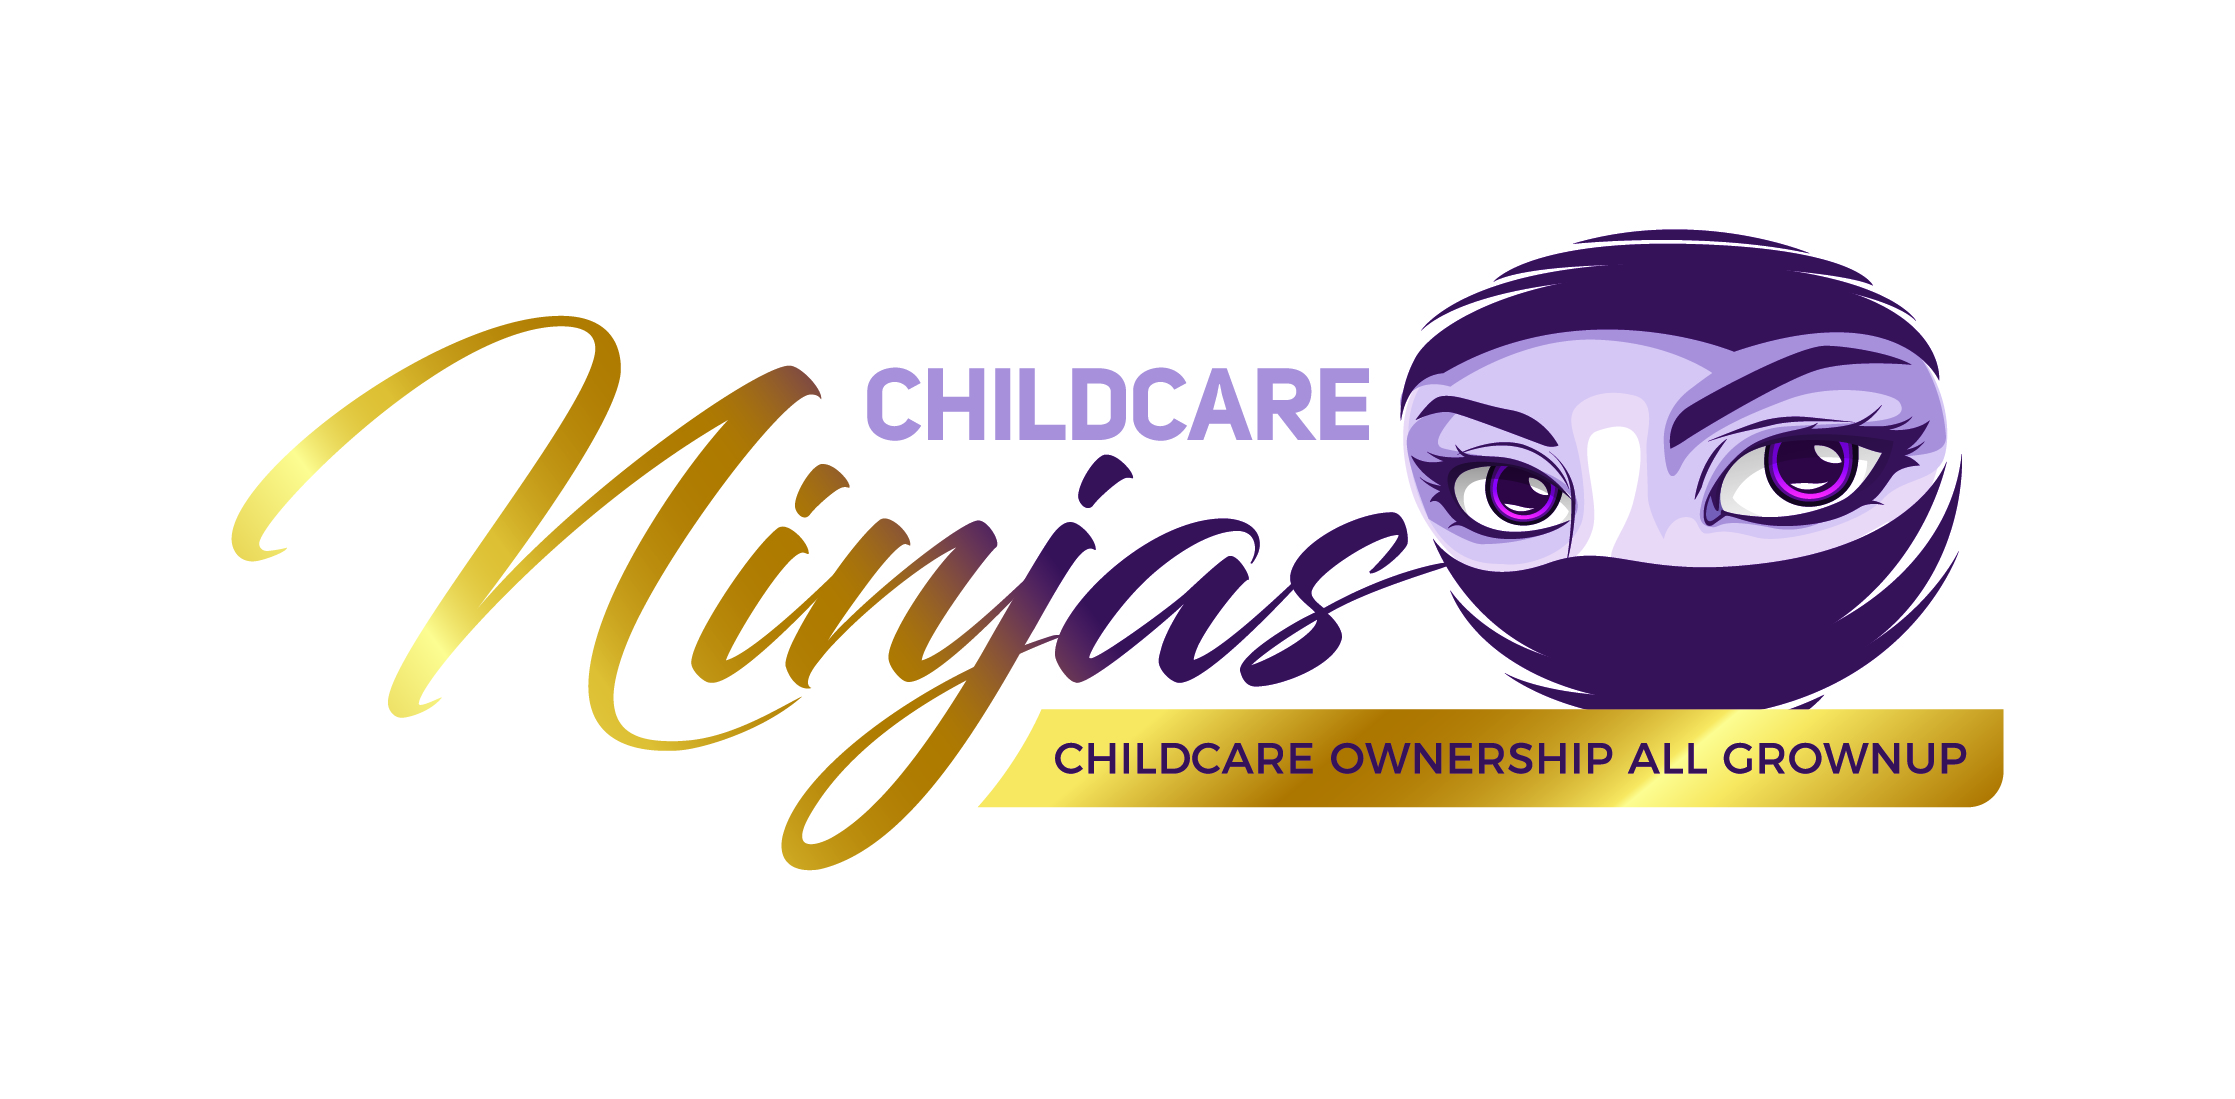 grow-your-childcare-business-with-childcare-ninjas